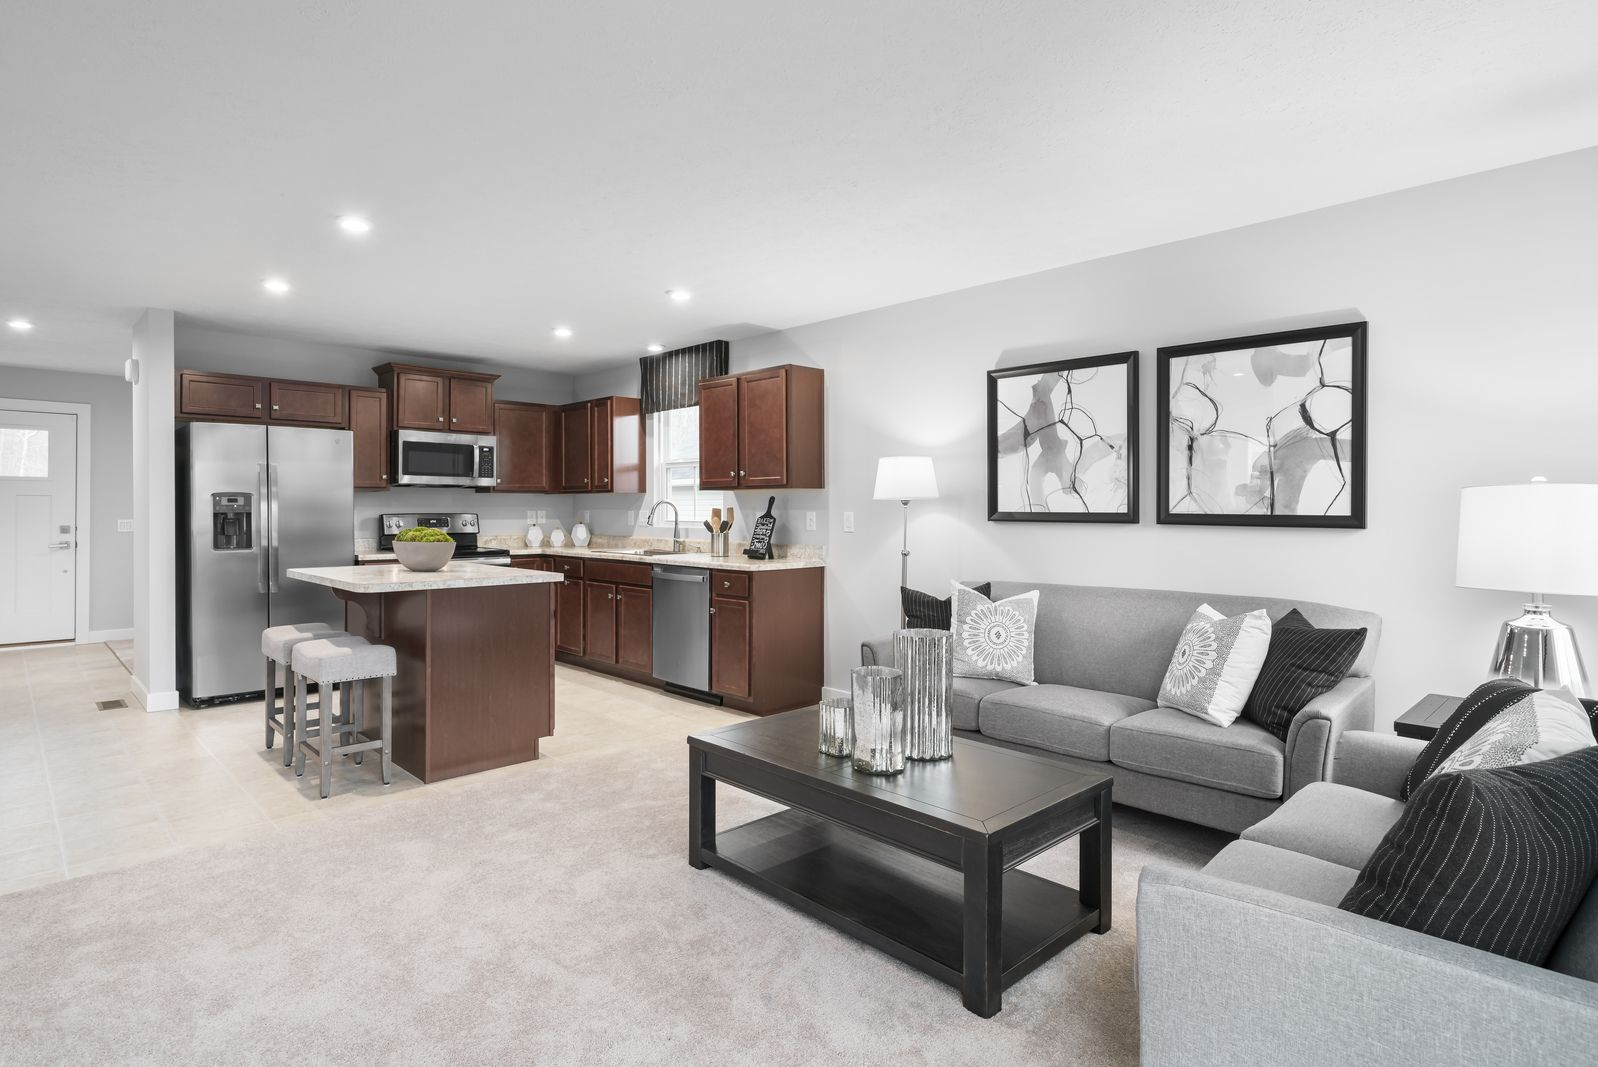 Living Area featured in the Aruba Bay By Ryan Homes in Norfolk-Newport News, VA